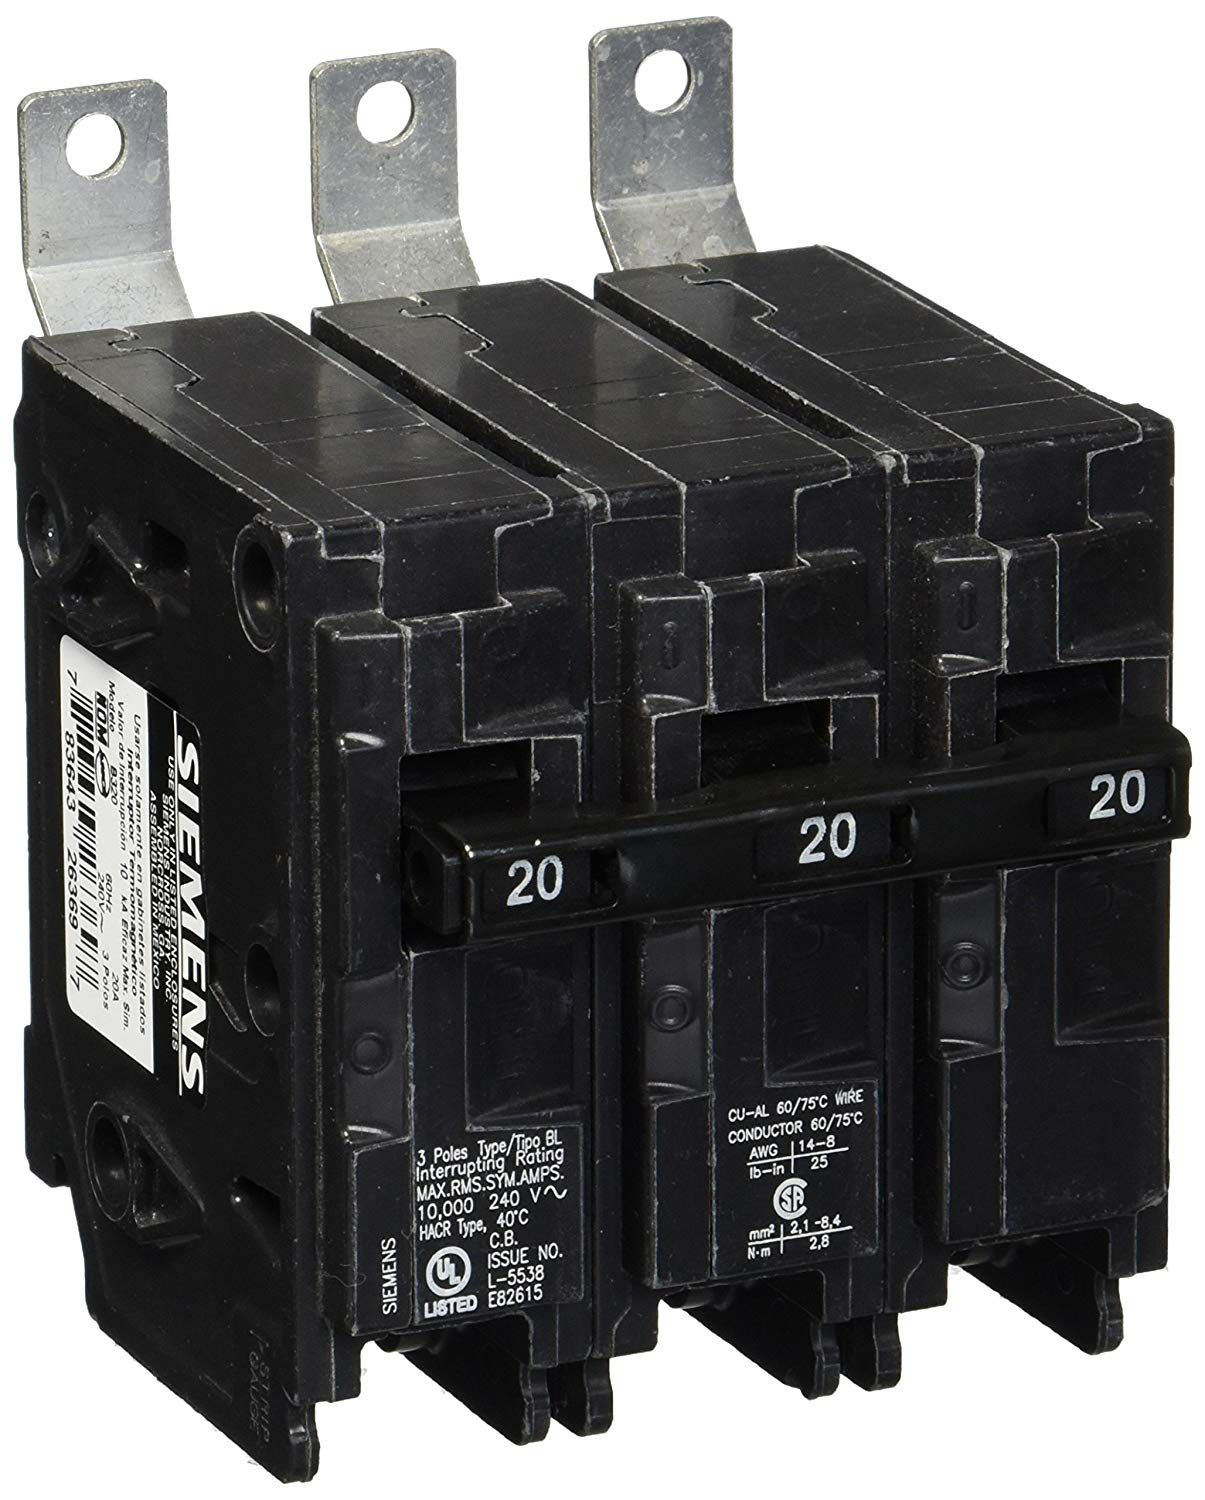 Siemens B320 20 Amp Three Pole 240 Volt 10kaic Bolt In Breaker You Can Find More Details By Visiting The Image Link This Is An Affil Siemens Breakers Pole